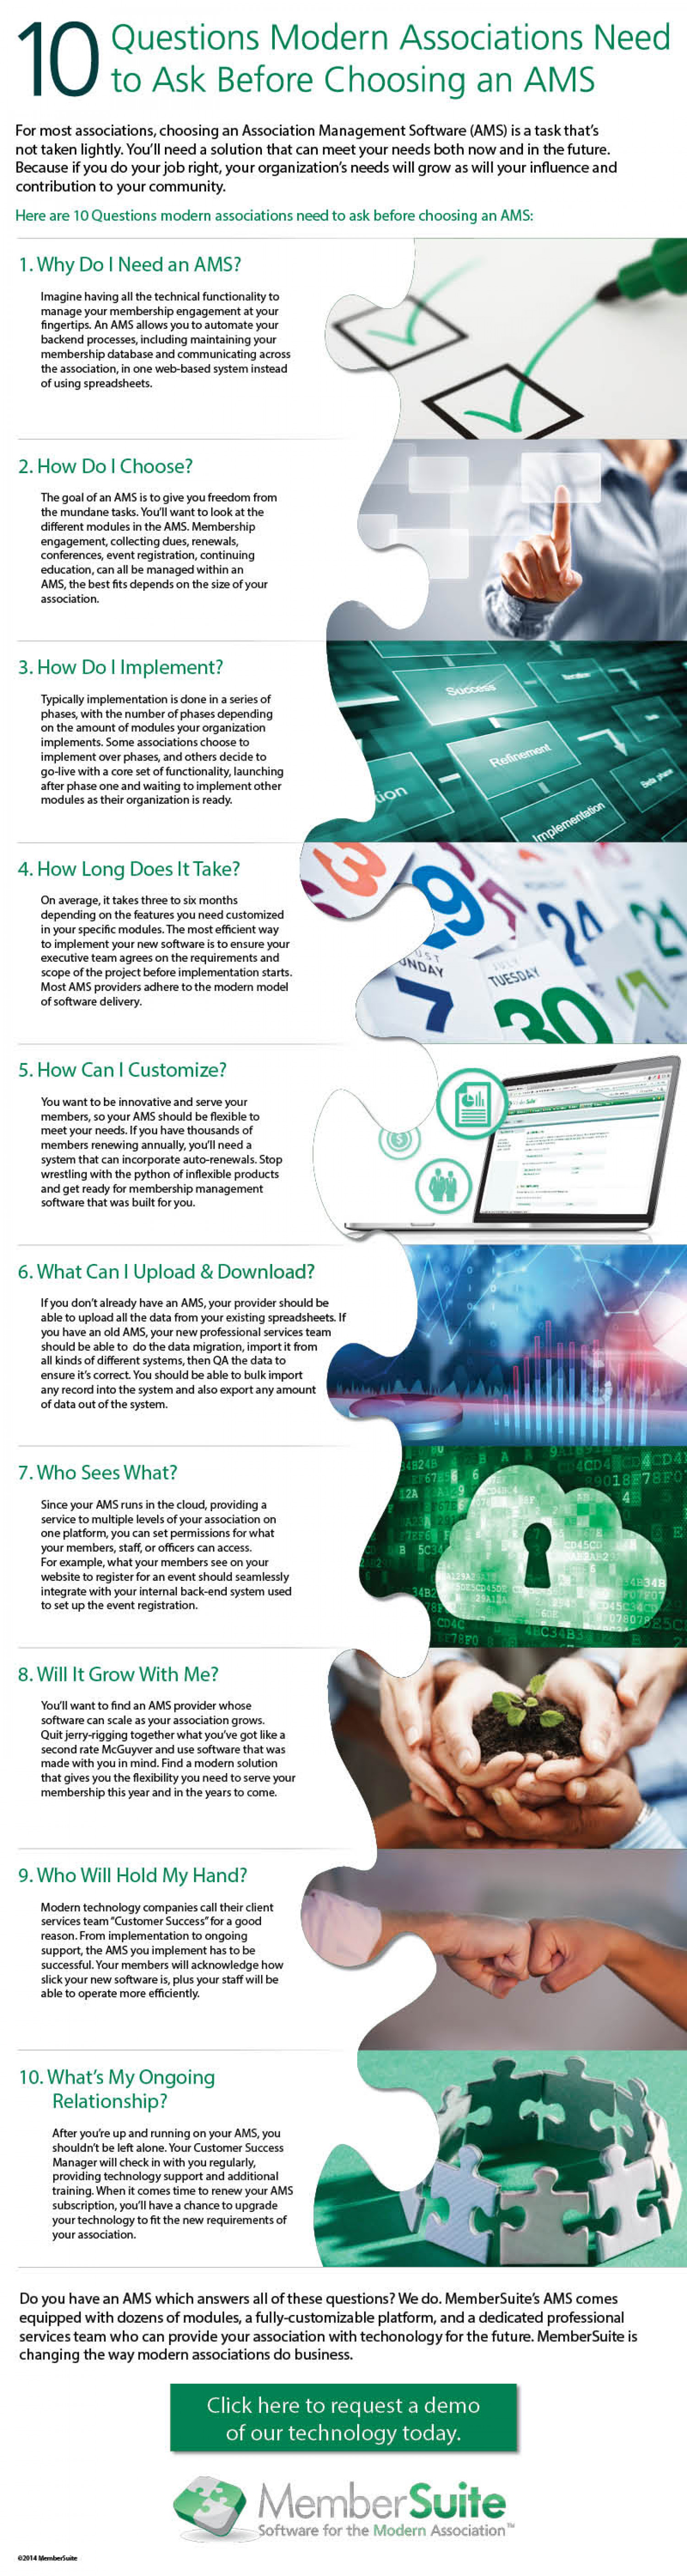 10 Questions Modern Associations Need to Ask Before Choosing an AMS Infographic